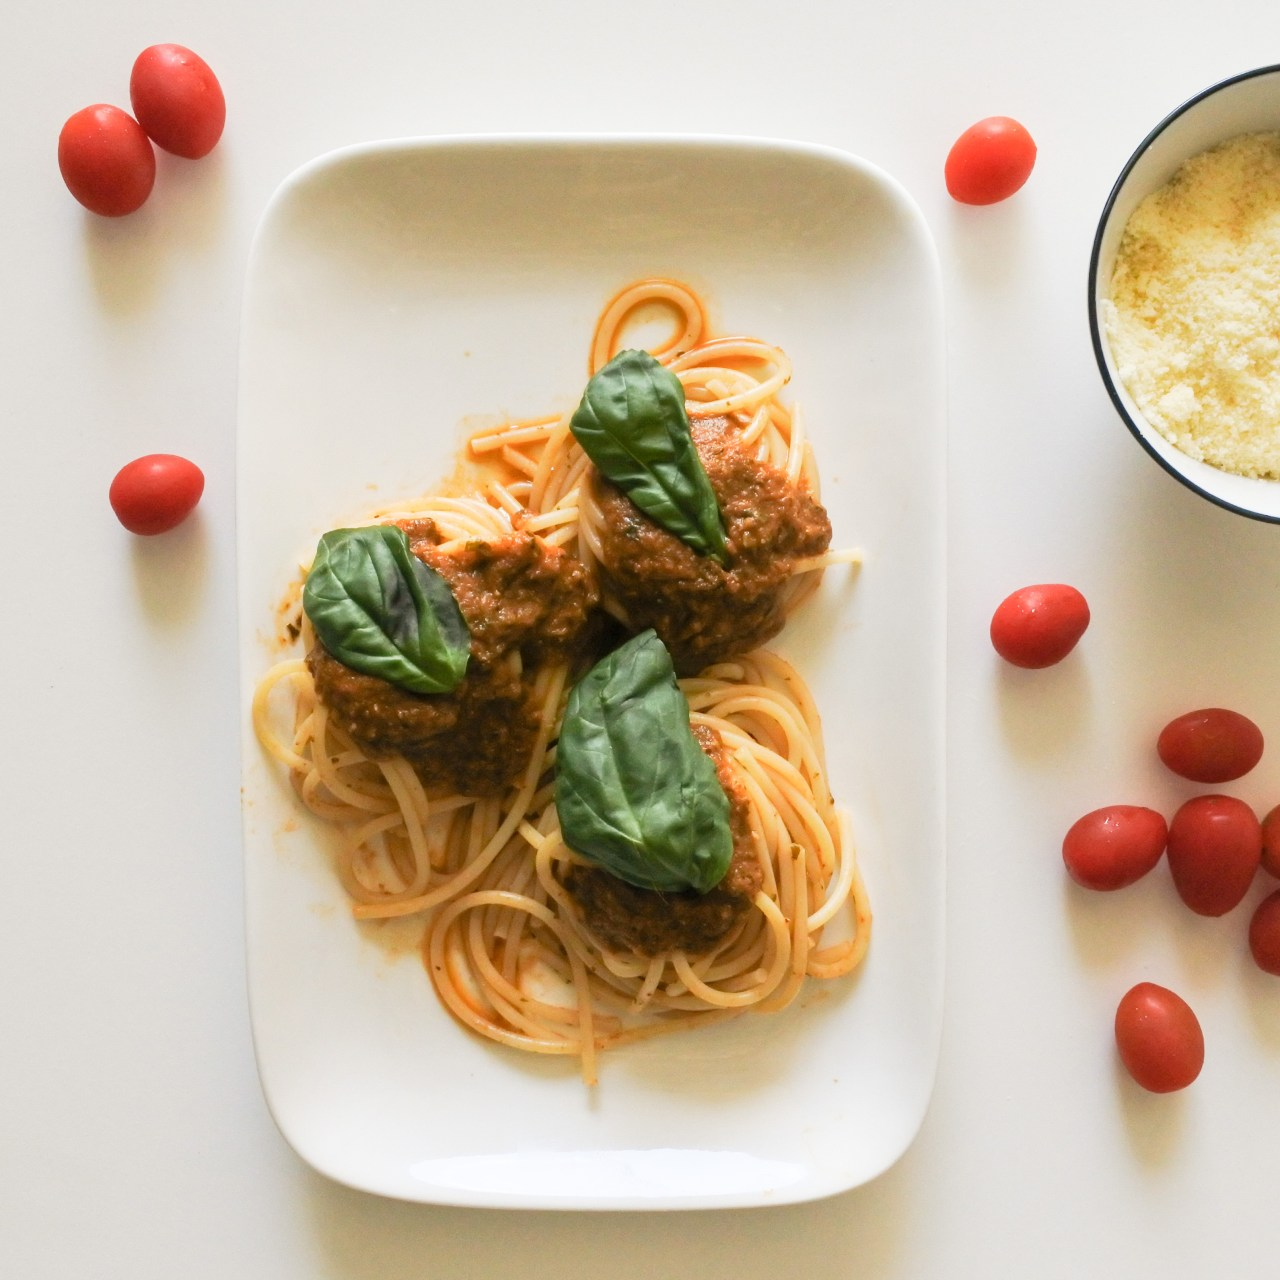 A plate of spaghetti covered in red sauce and garnished with Basil served alongside cherry tomatoes and grated Parmesan cheese